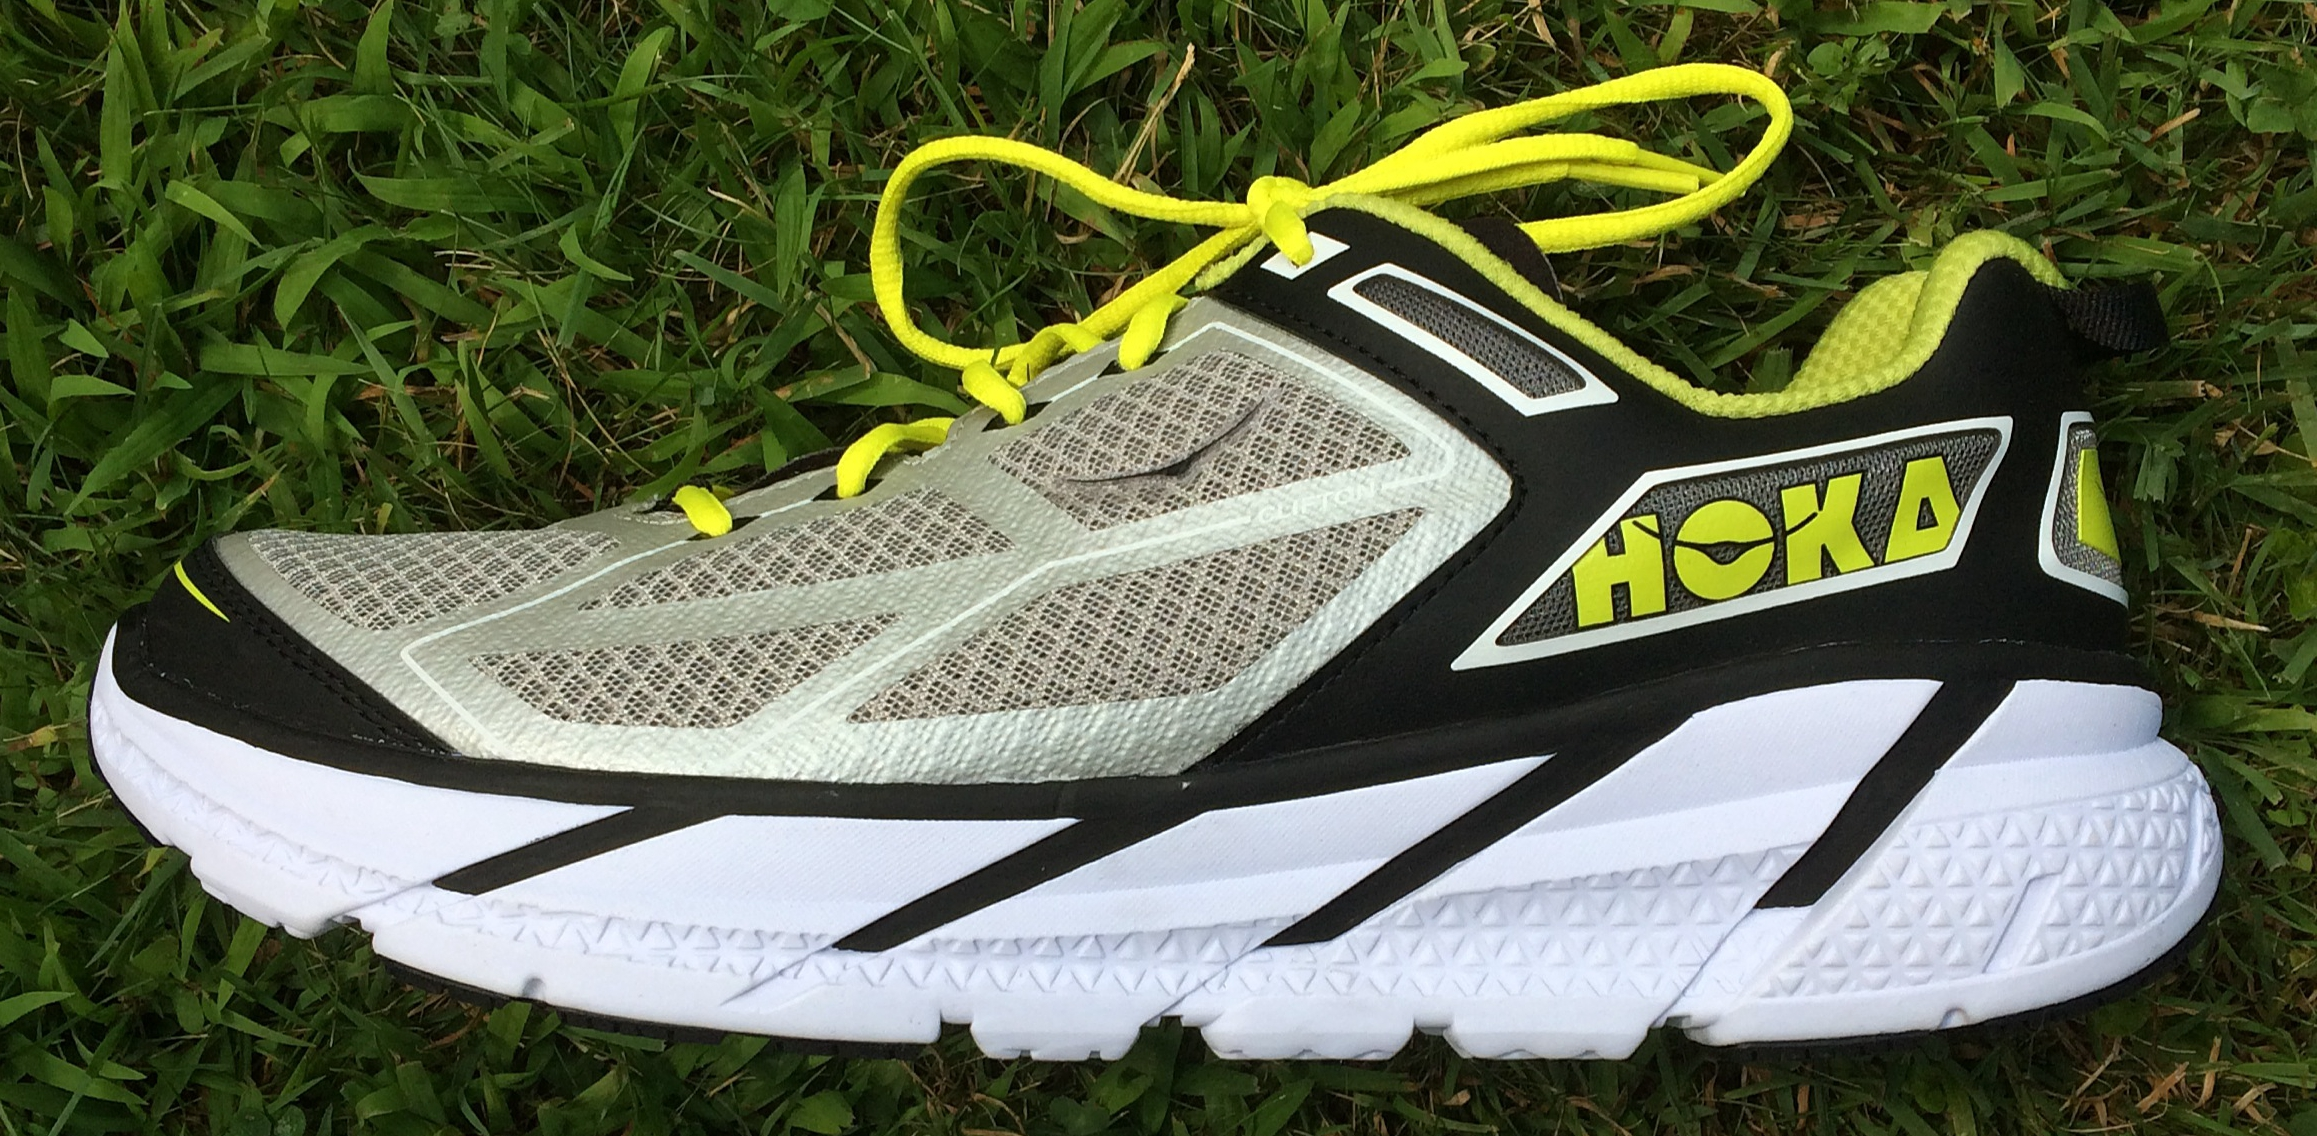 Hoka Running Shoes Outlet In Ventura